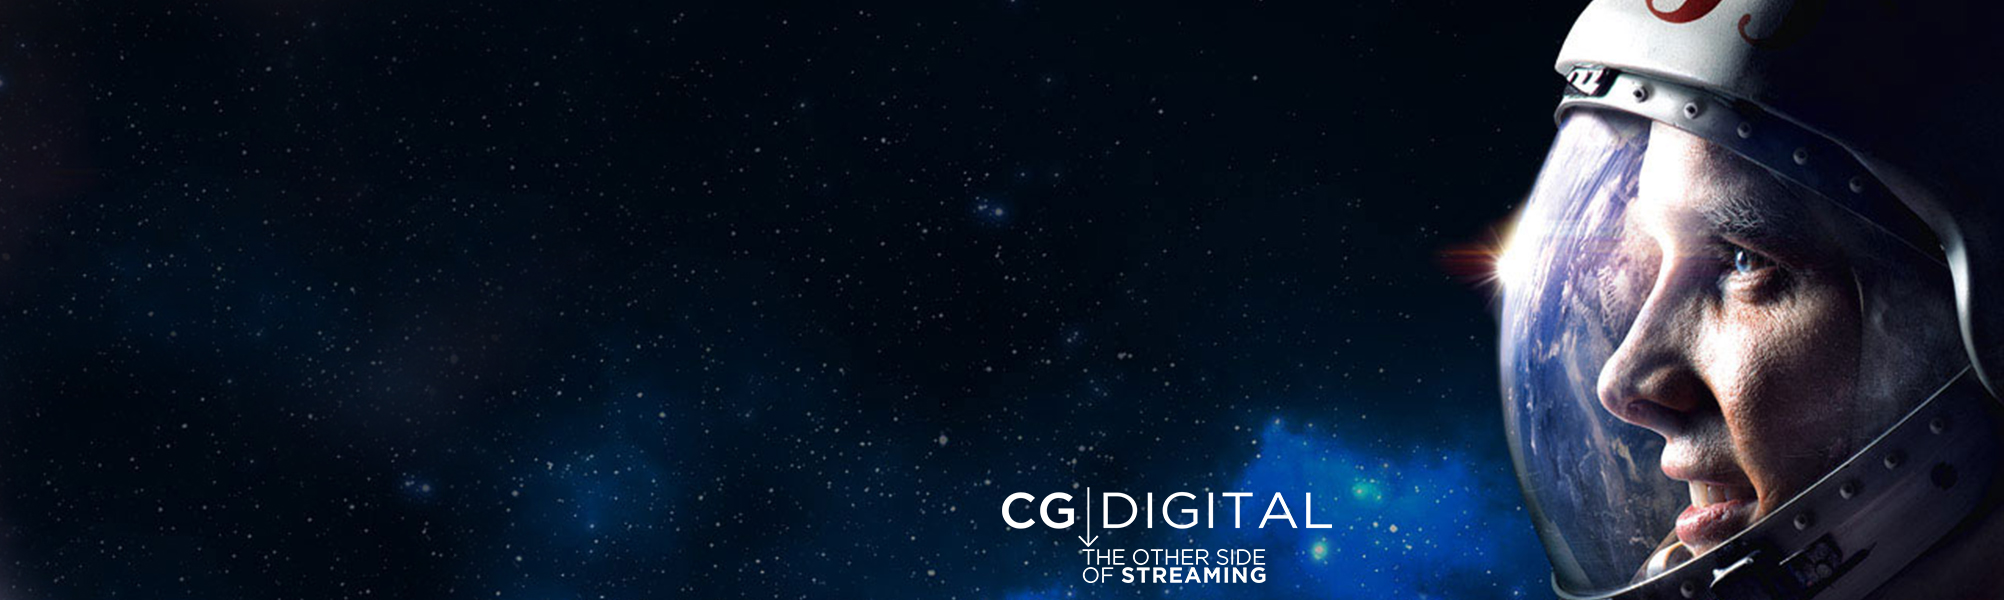 CG Digital - The Other Side of Streaming